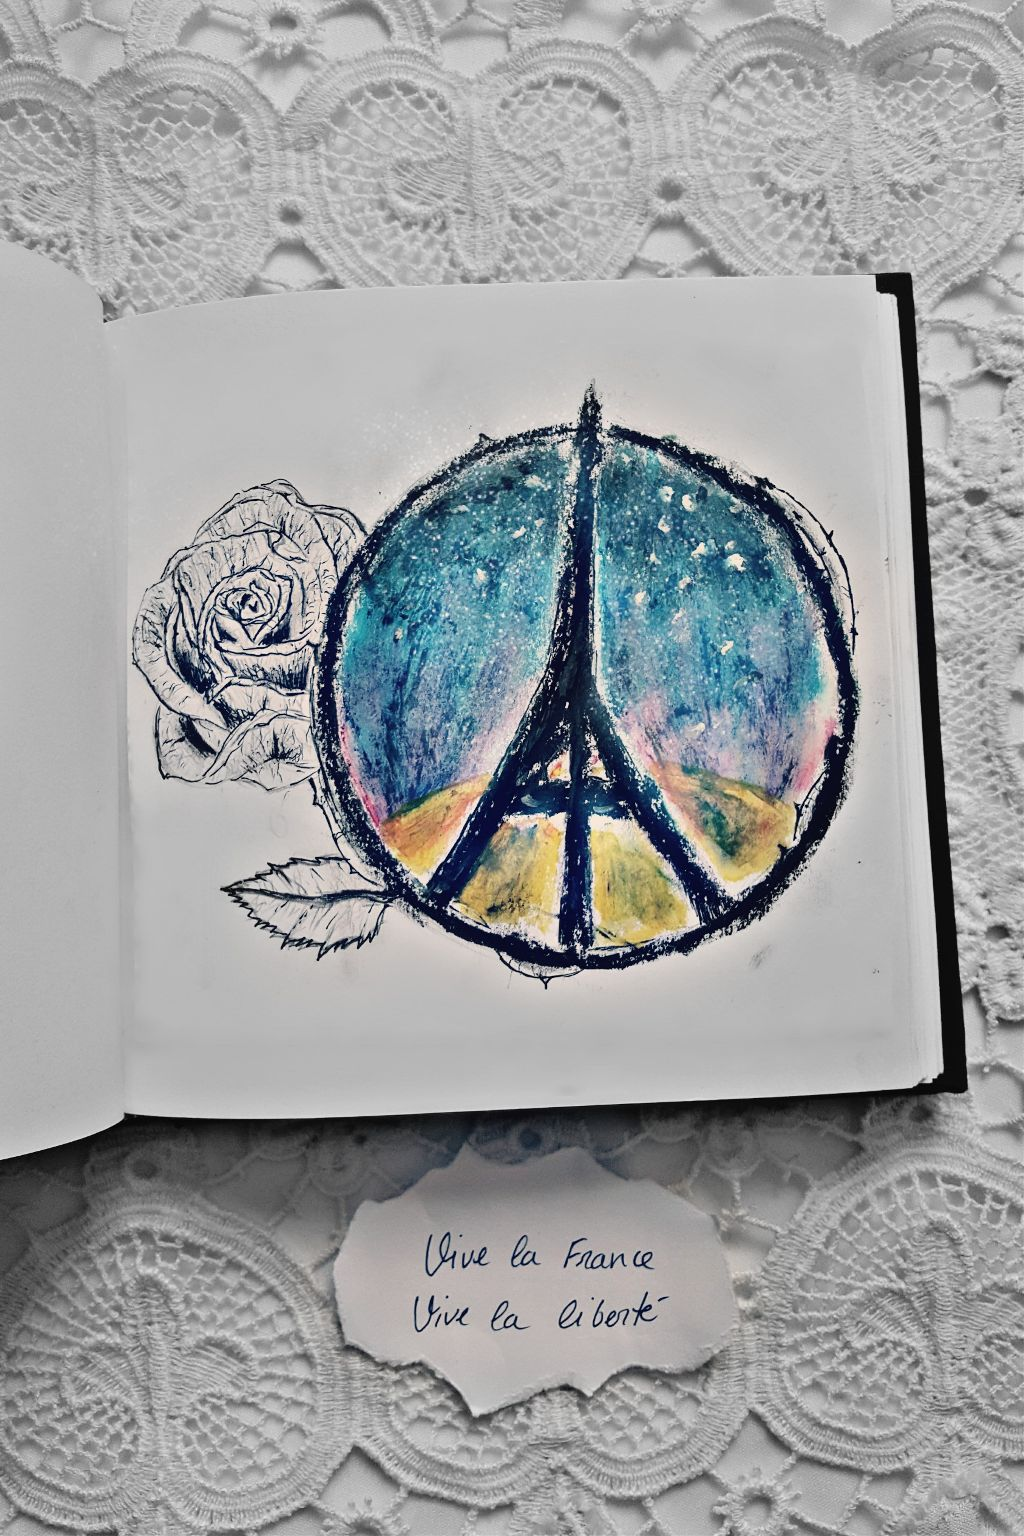 """For those who have fallen, brothers and sisters, fathers and mothers, sons and daughters ... for all """"vive la France, vive la liberte."""" 🌹🍃 Por todos los que han caído, hermanos y hermanas, padres y madres, hijos e hijas... por todos ellos """"vive la France, vive la liberté.""""  #pencilart  #people  #photography #emotions"""